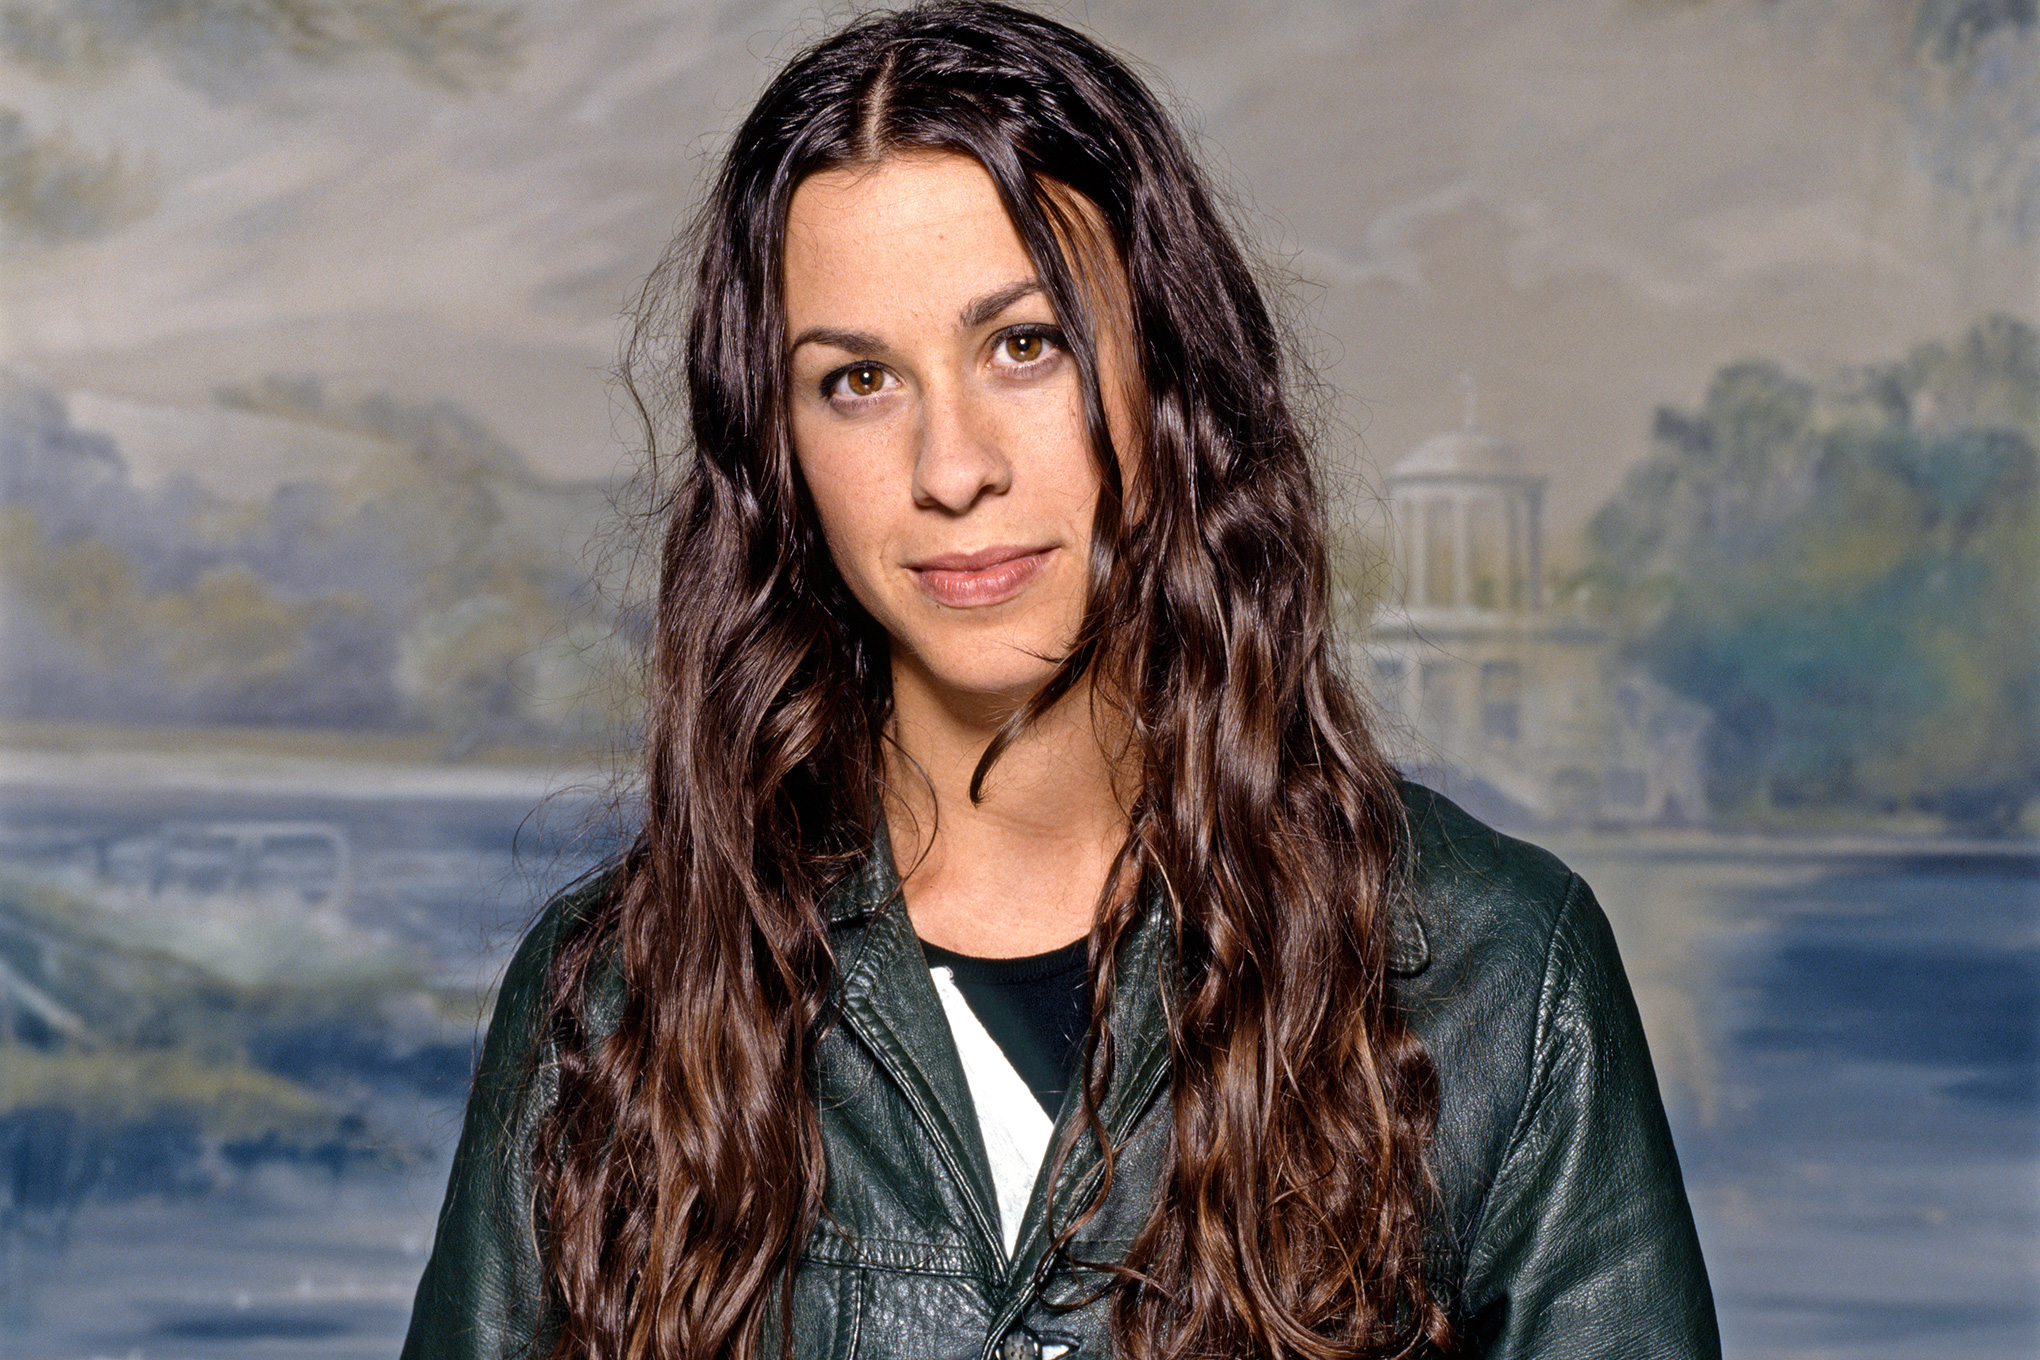 Alanis Morissette Wallpapers High Quality Download 2040x1360